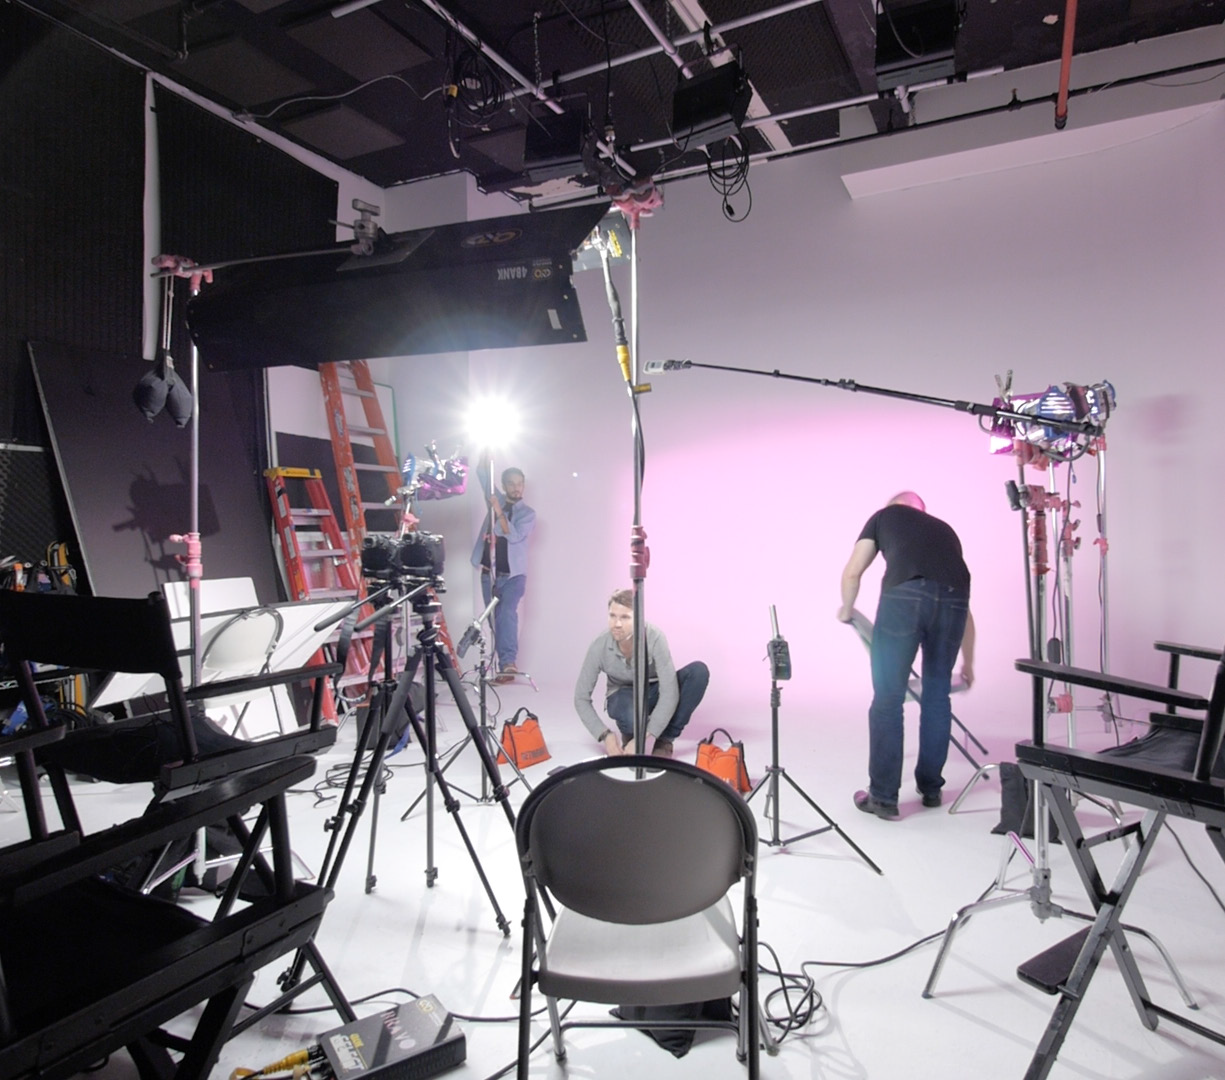 Top Notch Cinema is a video production company in New York dedicated to helping businesses grow their brands via video.